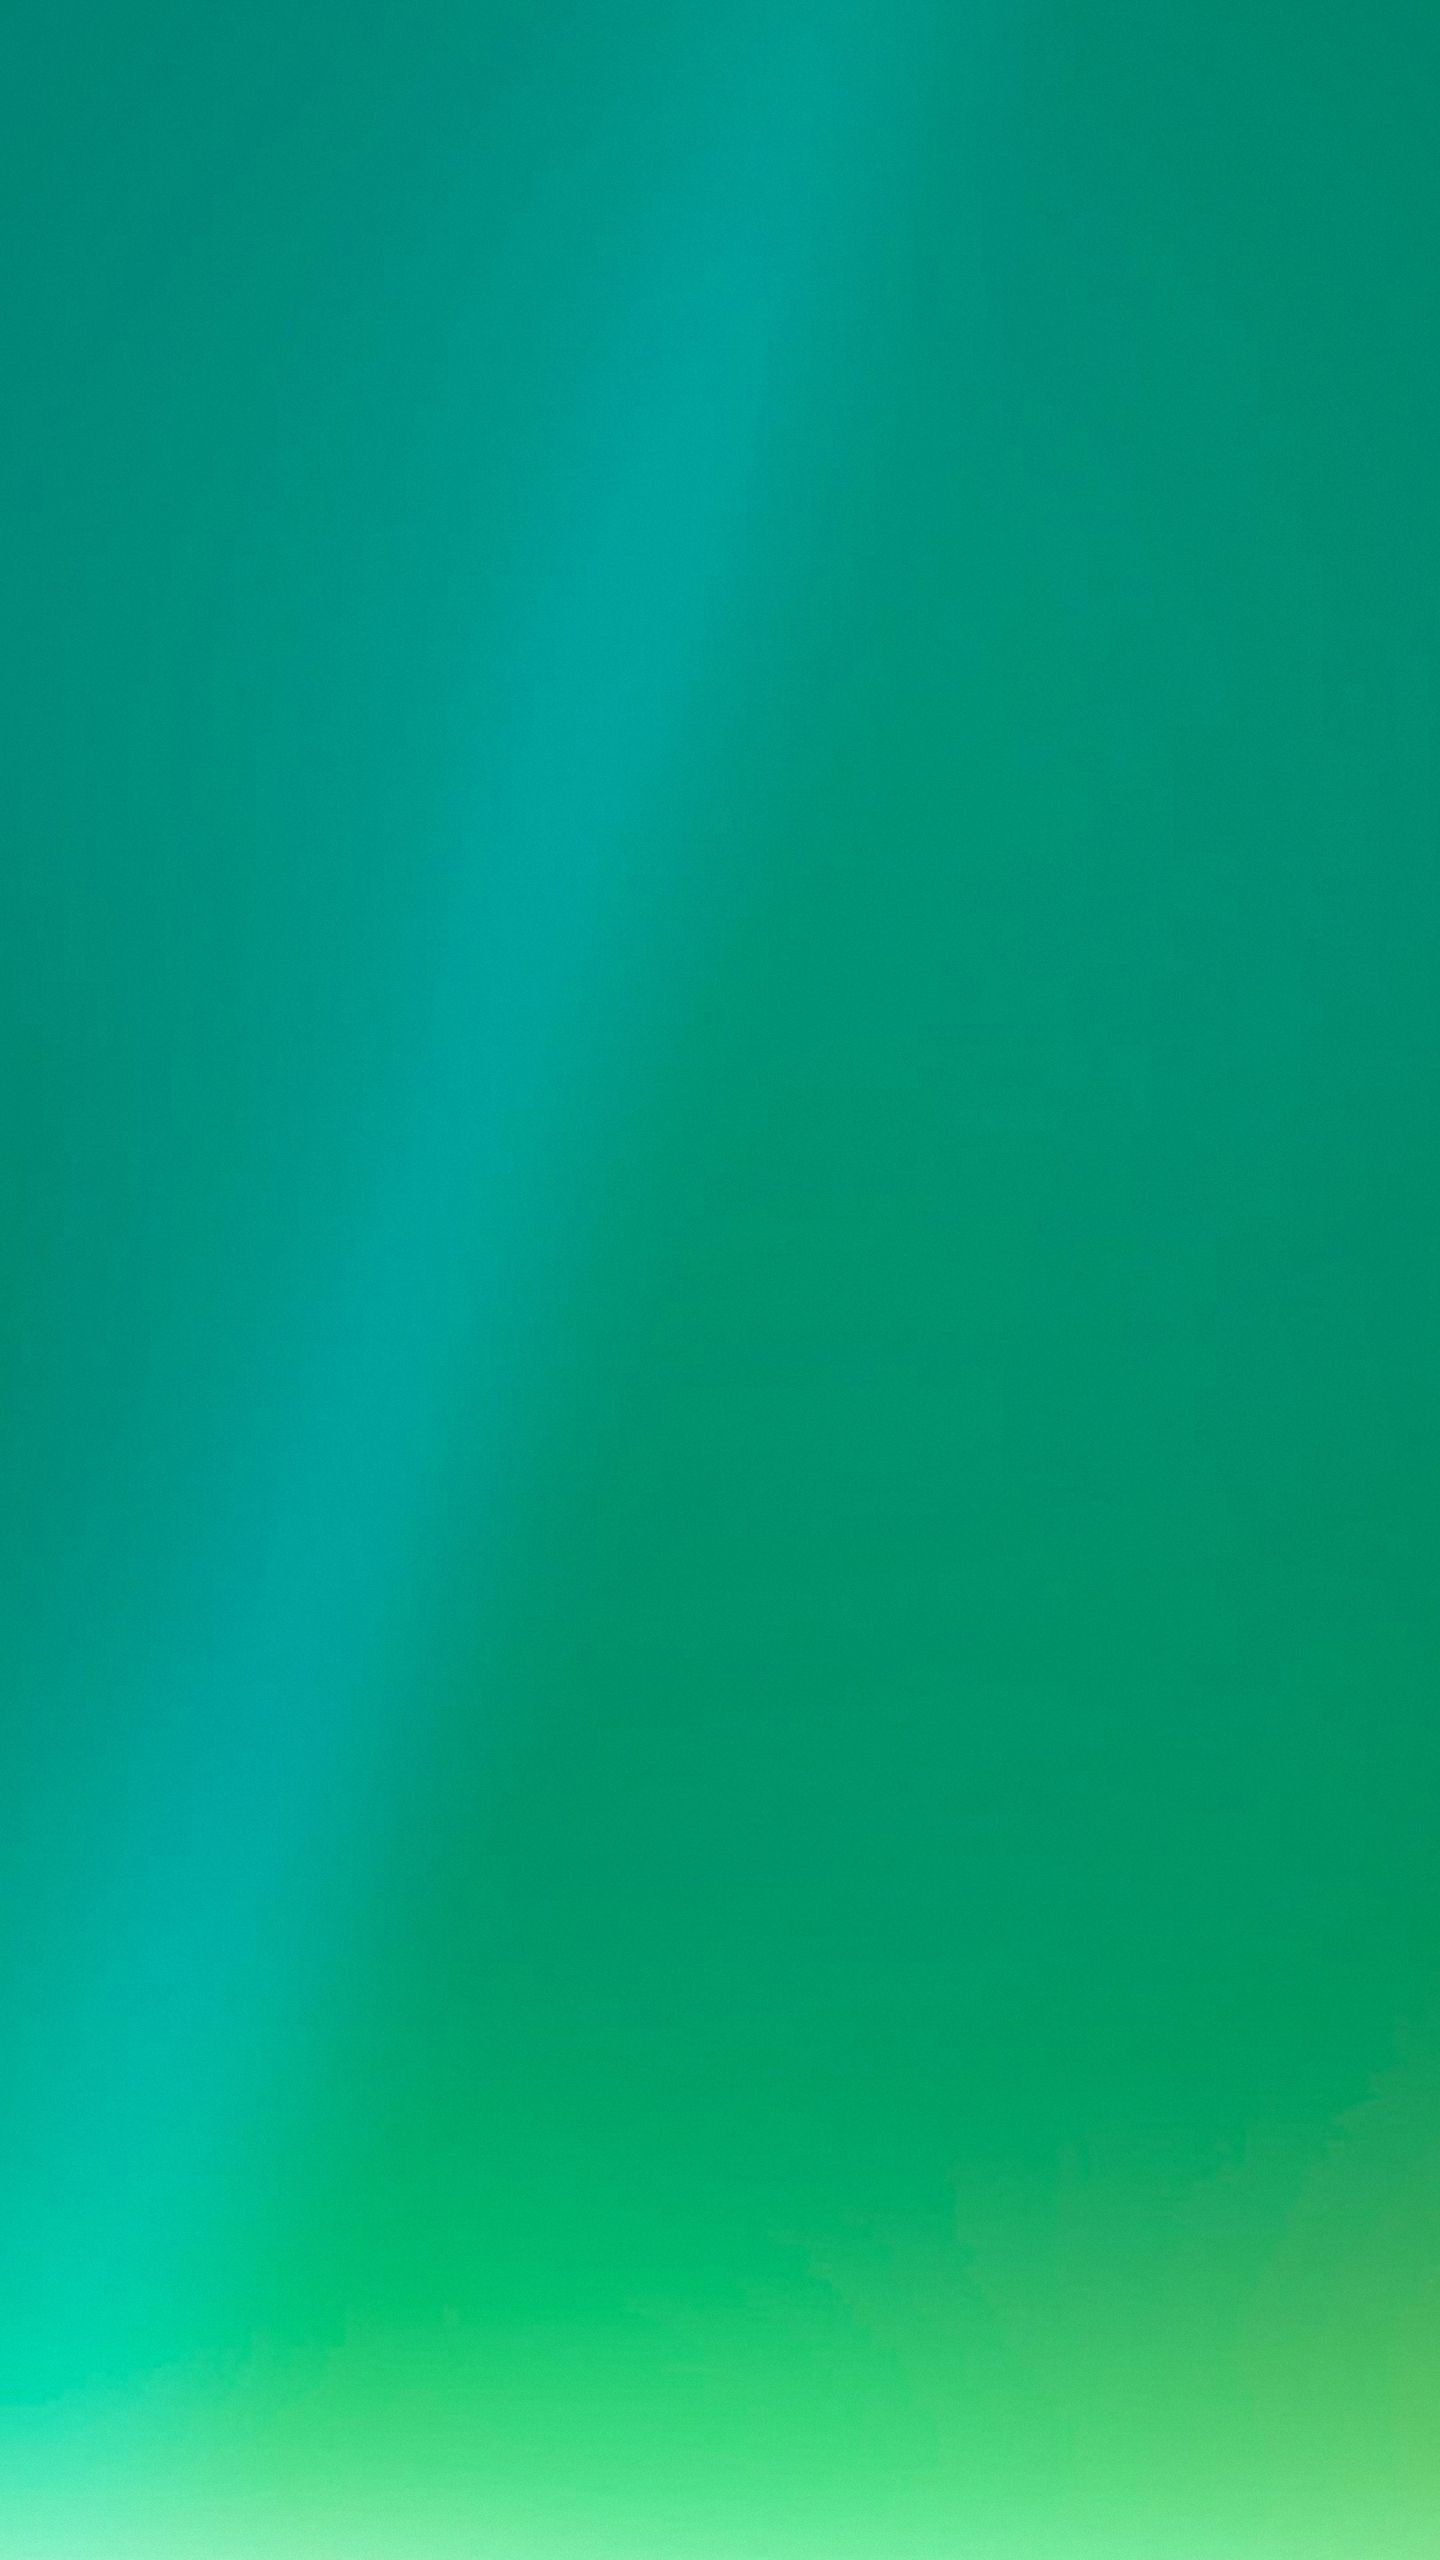 1440x2560 for your lg g4 hd  greenish lg g4 wallpapers